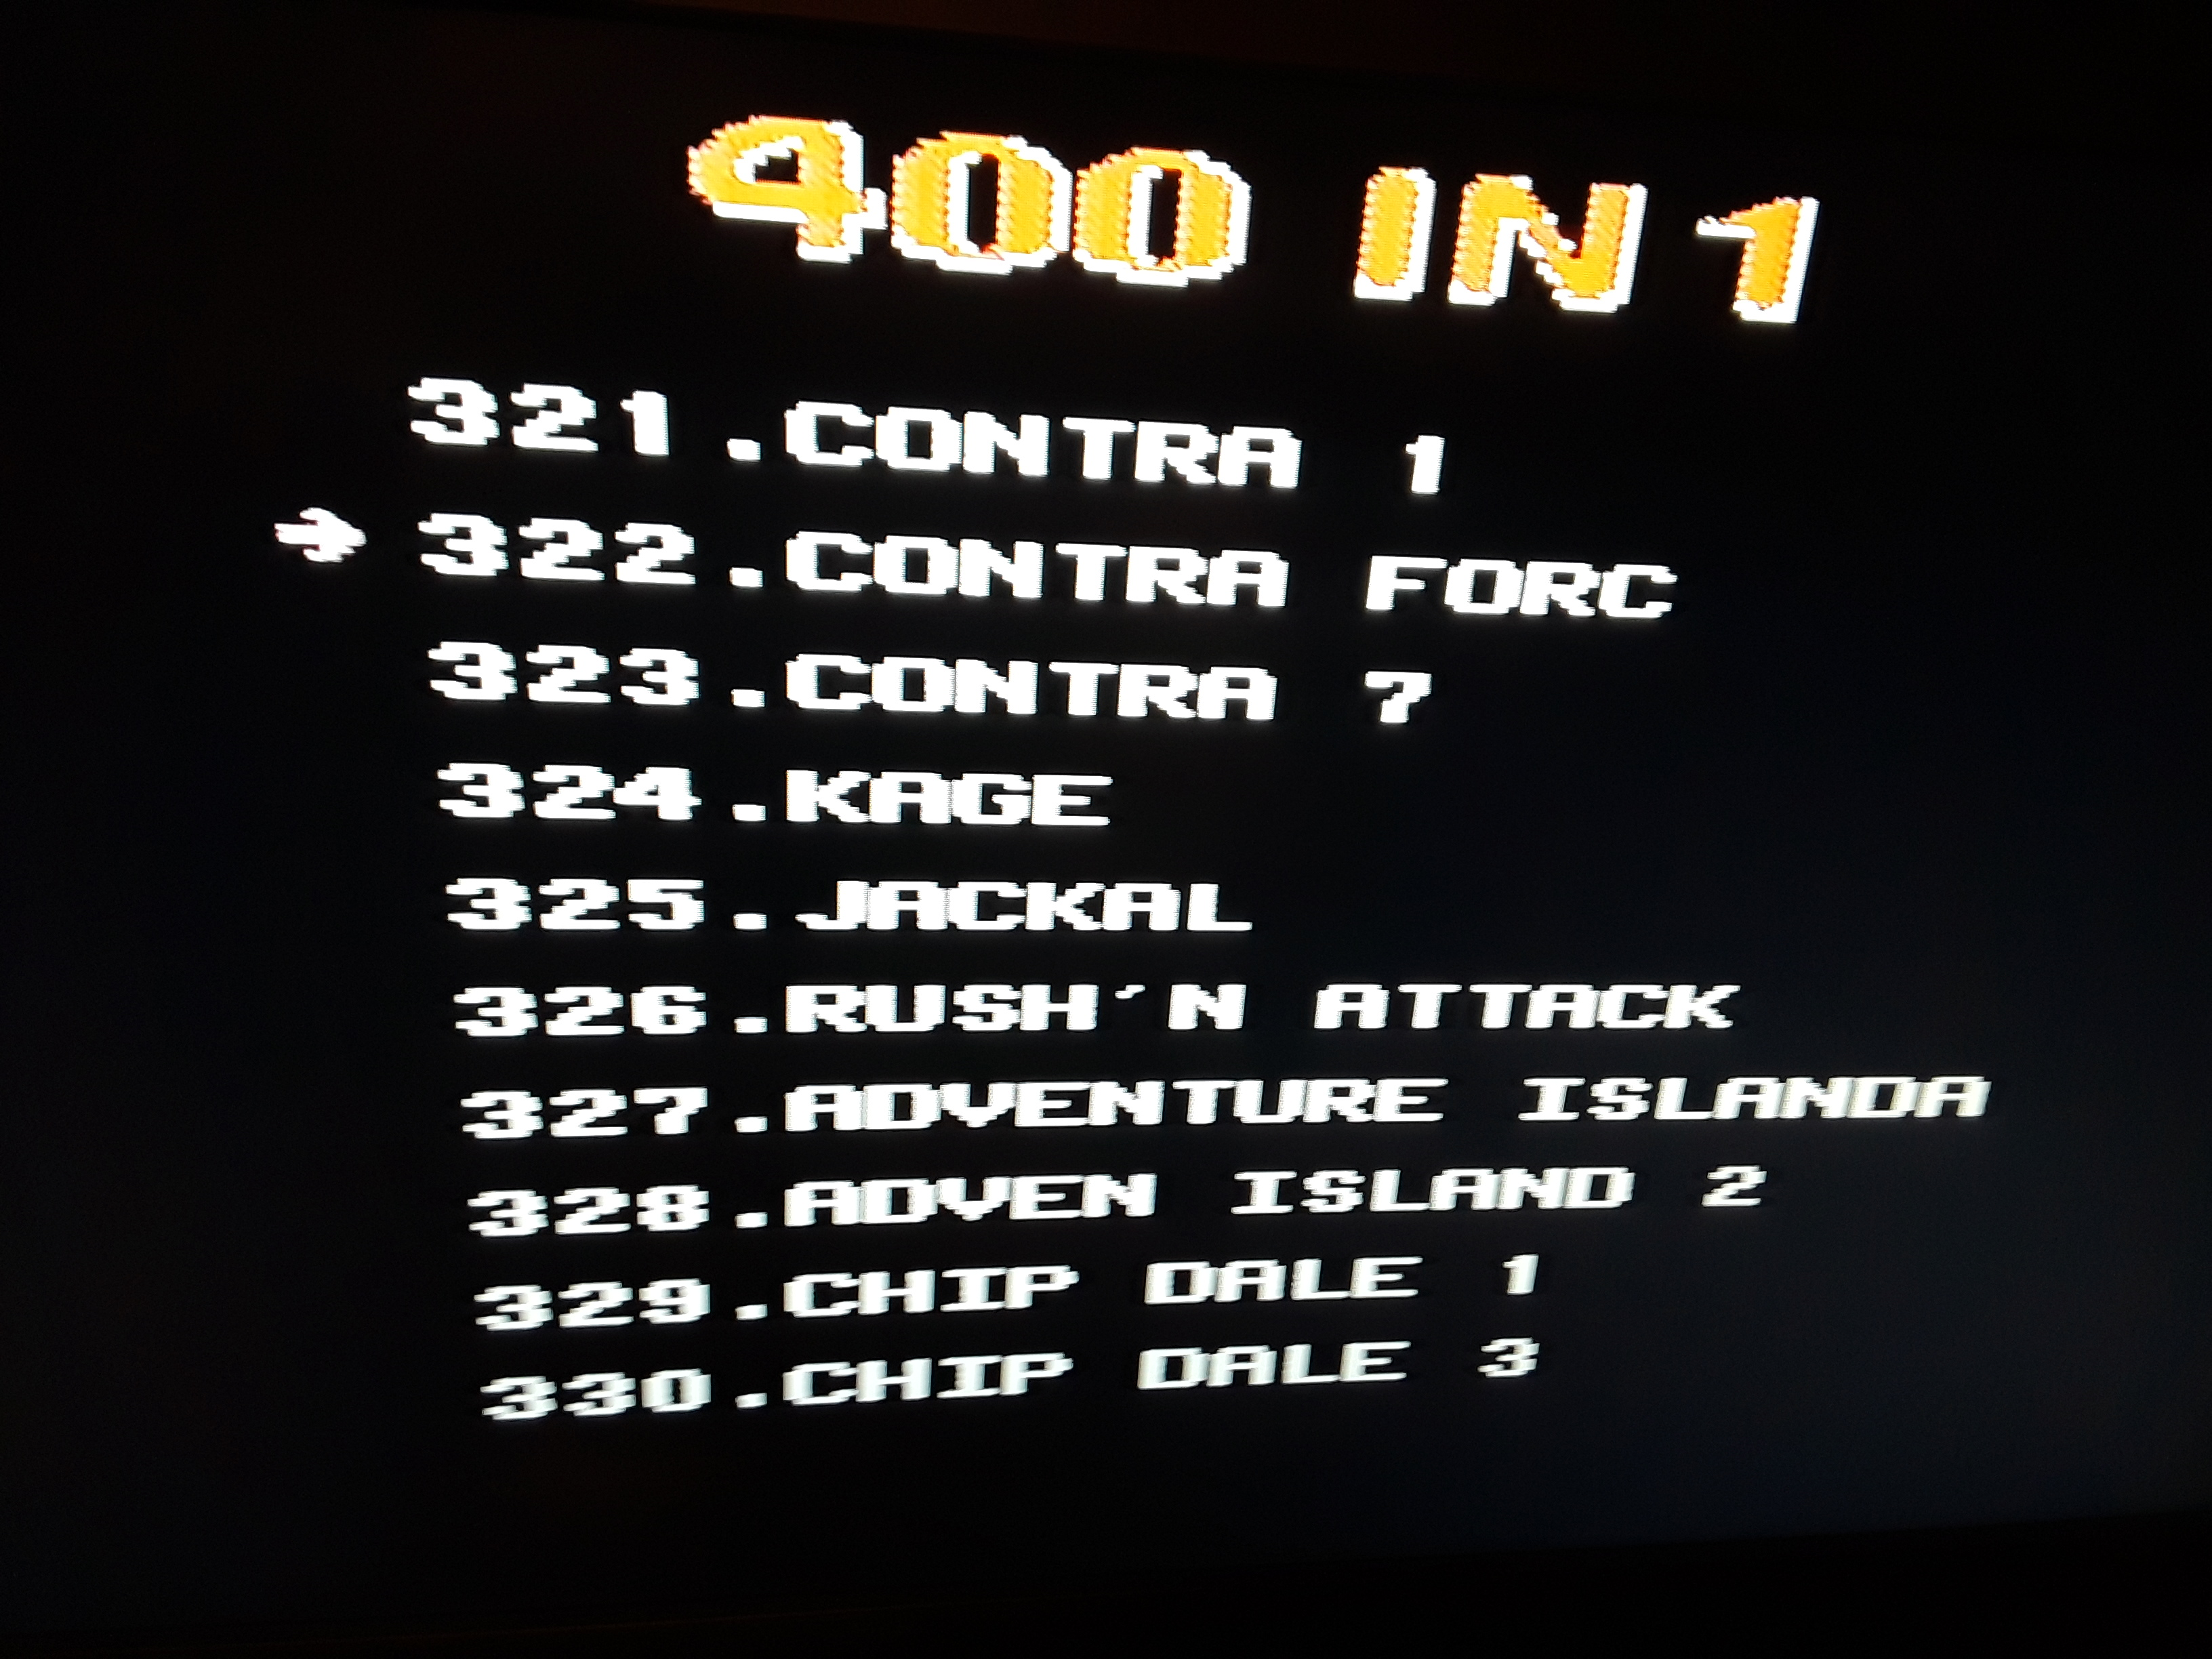 Contra Force 920 points